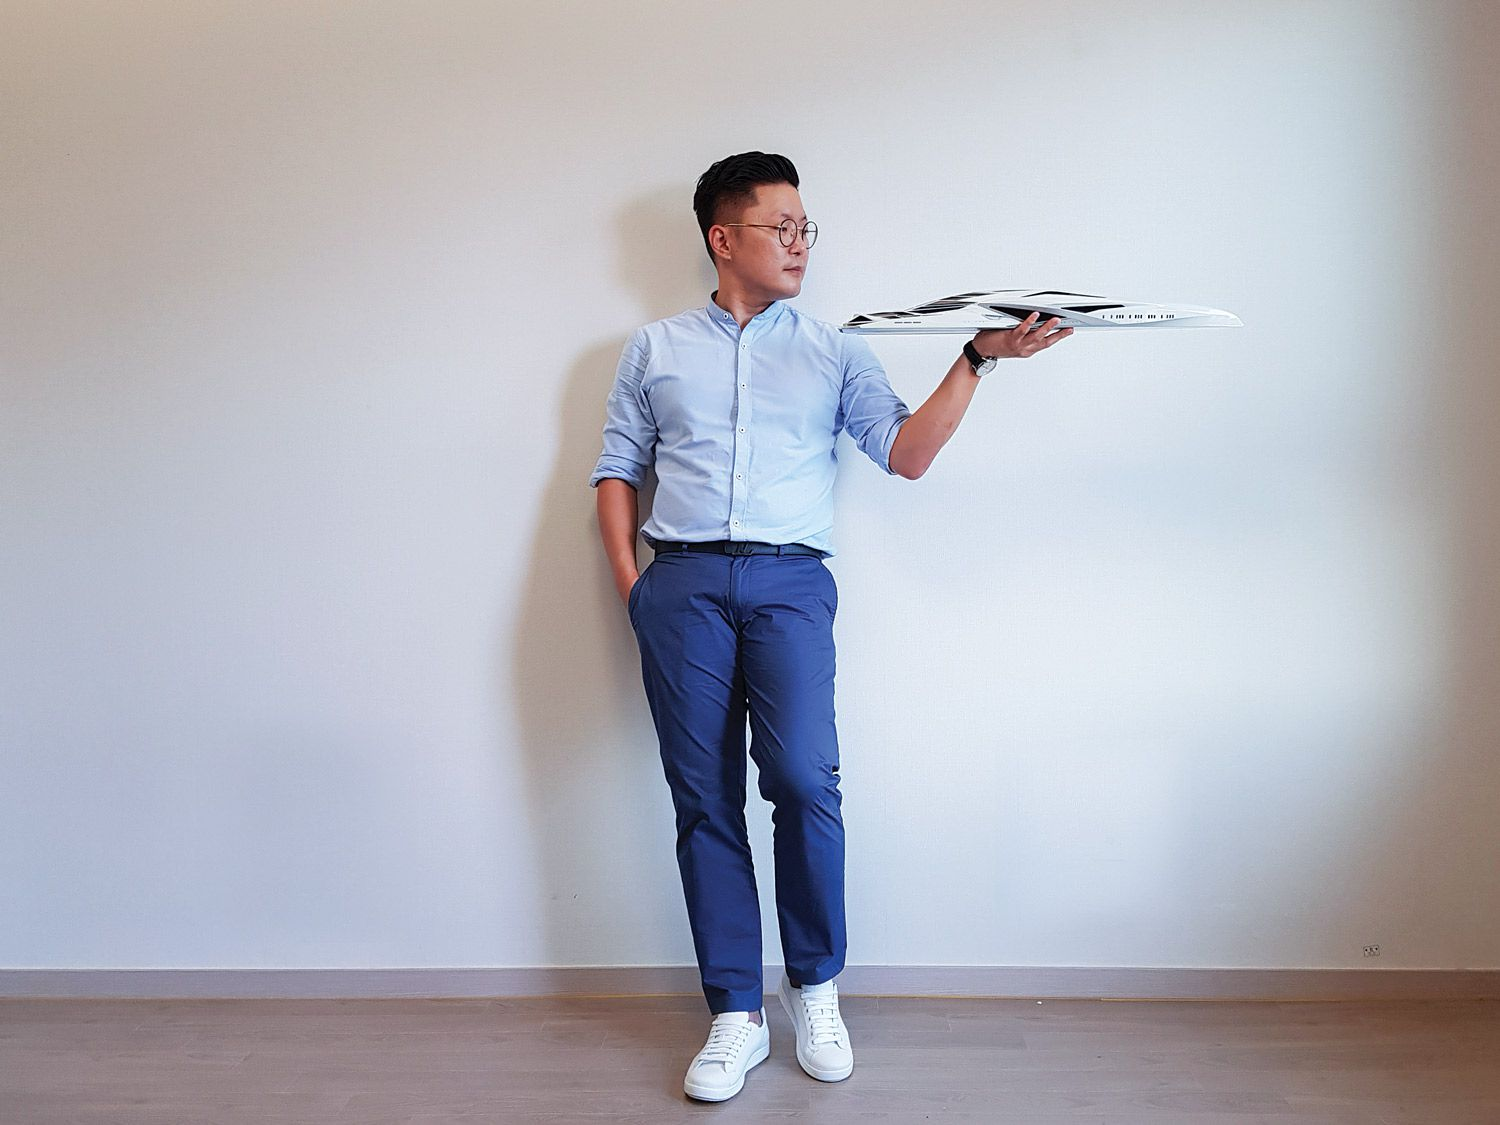 Chulhun Park is the chief designer at Latitude Yachts. Previously, he did exterior design for Palmer Johnson.